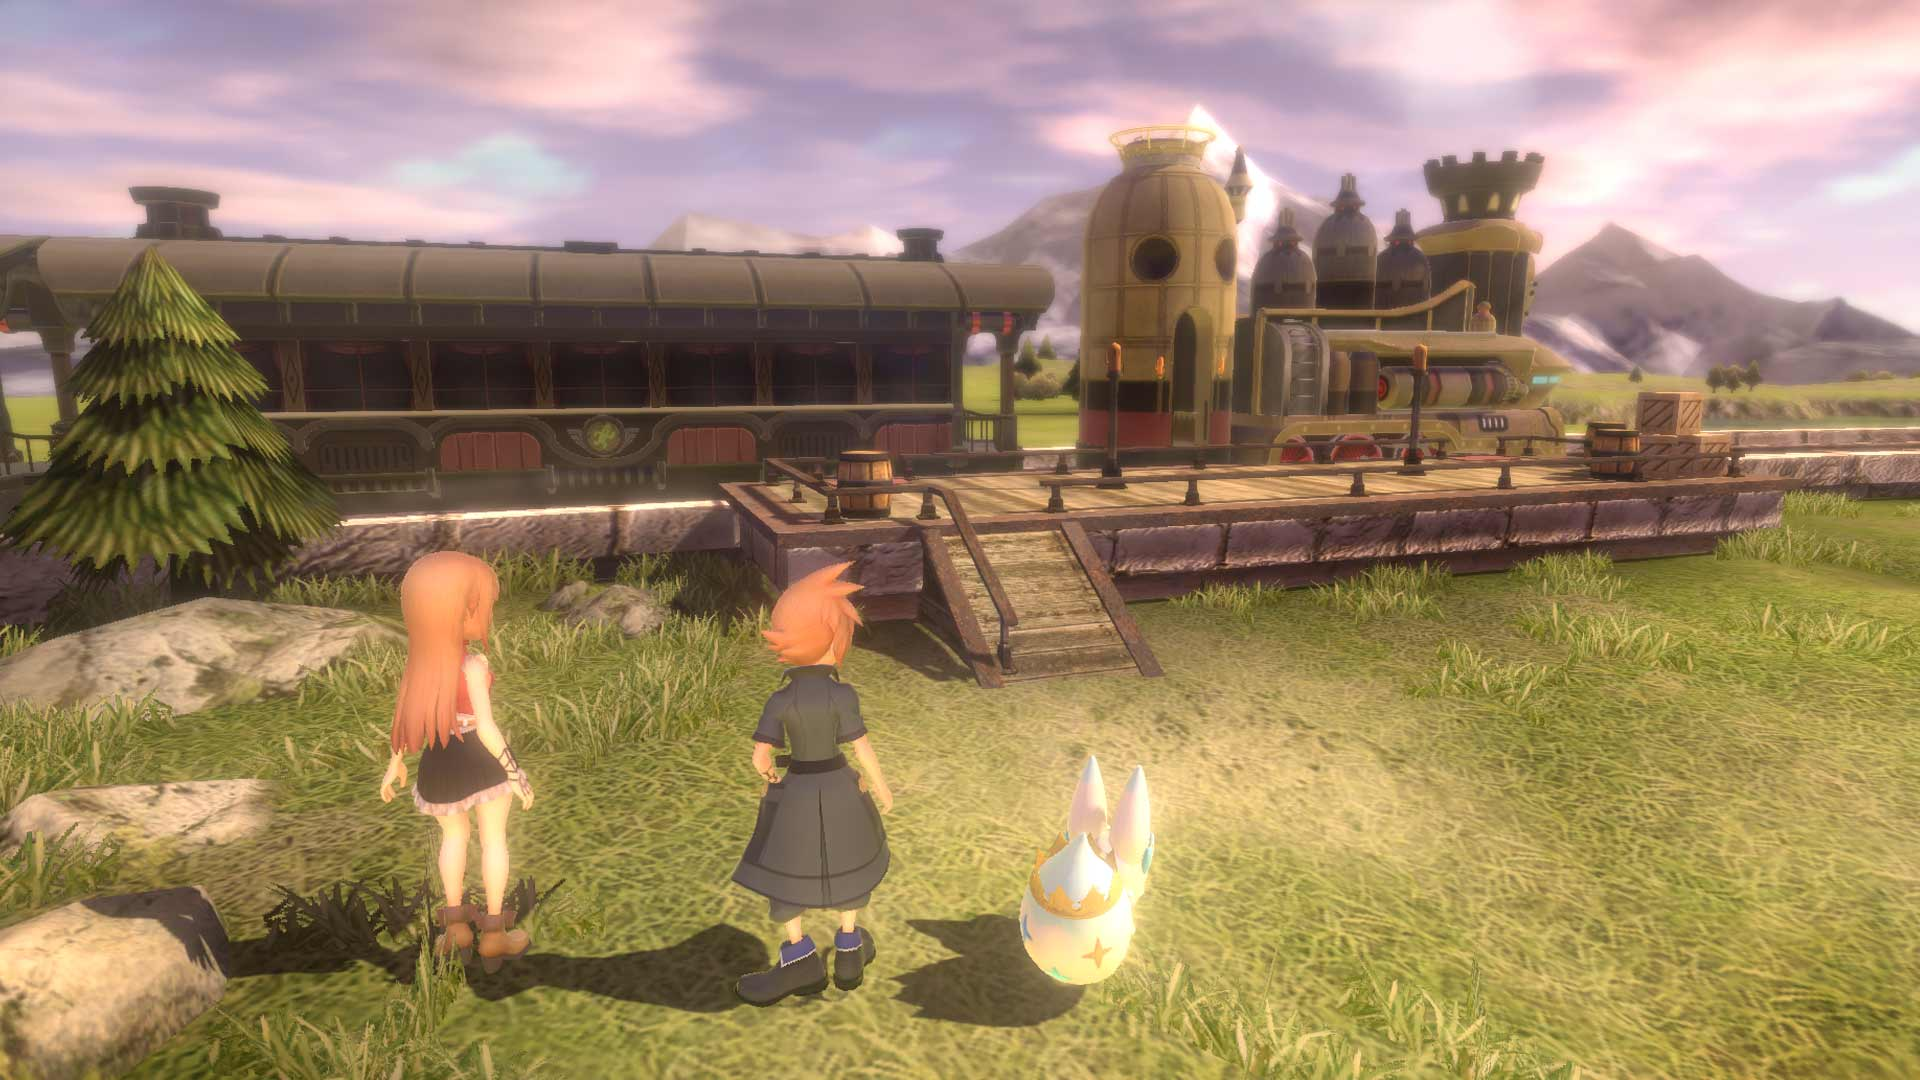 download world of final fantasy day one edition repack by fitgirl singlelink iso rar part kumpulbagi diskokosmiko